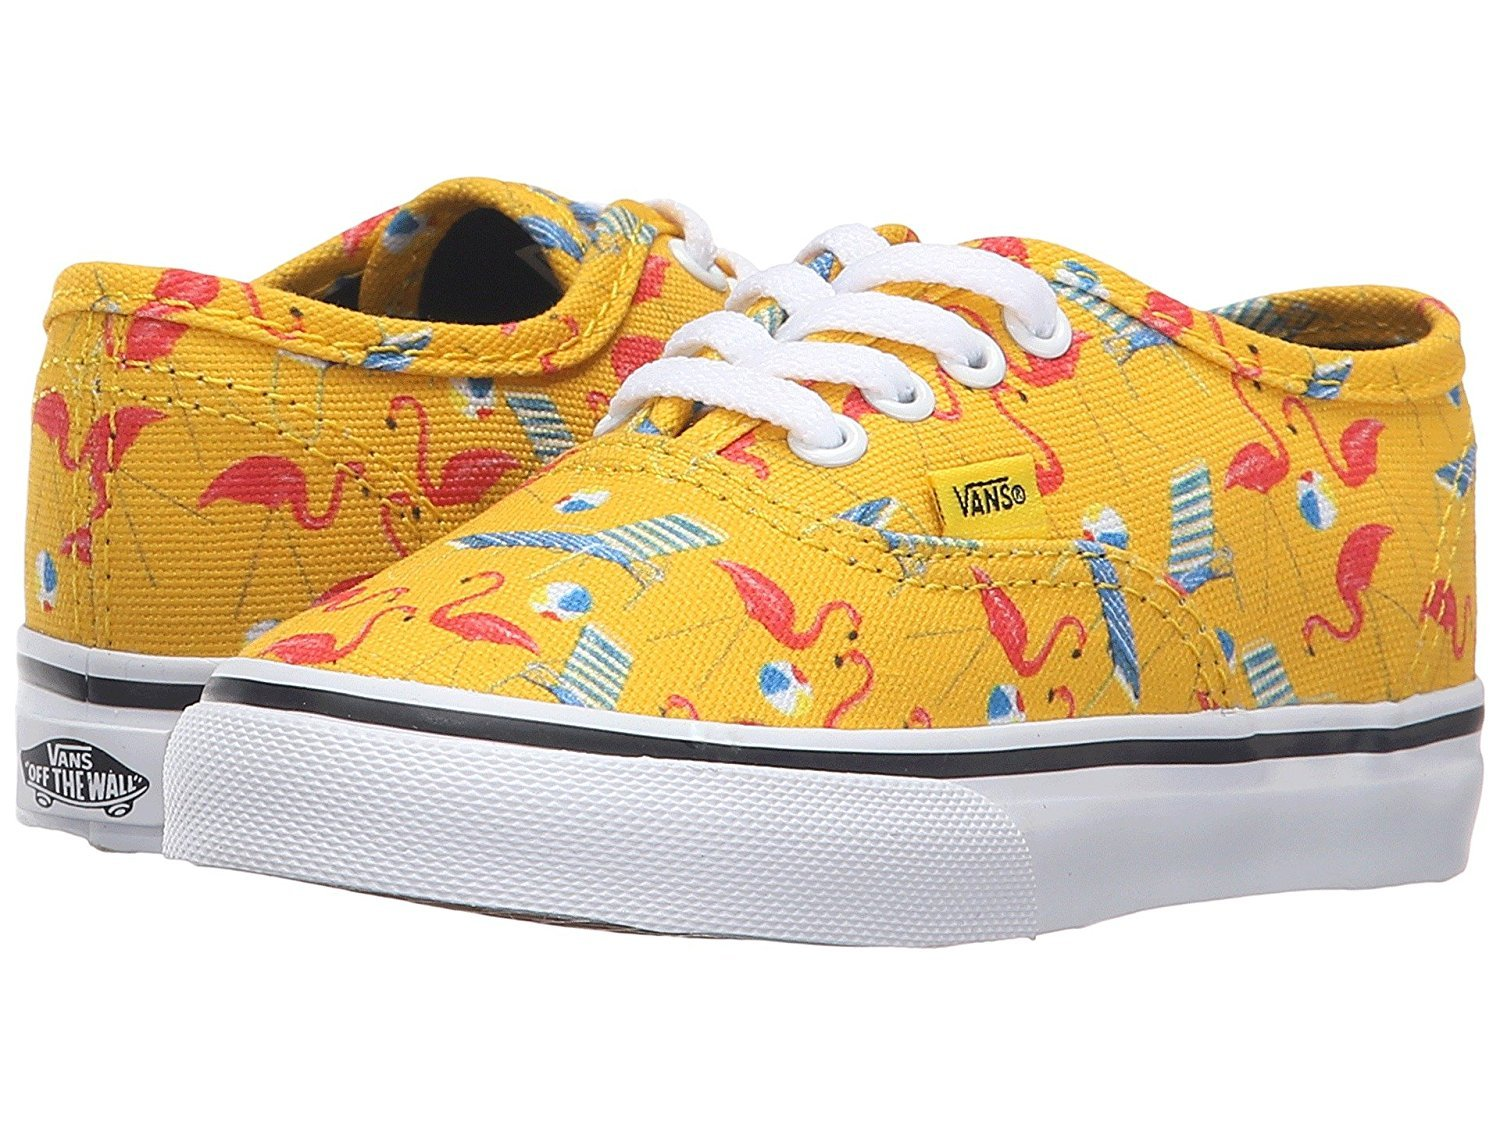 7dfe72b349 Galleon - Vans Toddlers Authentic Pool Vibes Skate Shoes (Cyber Yellow    True White) (7.5 Toddler M)